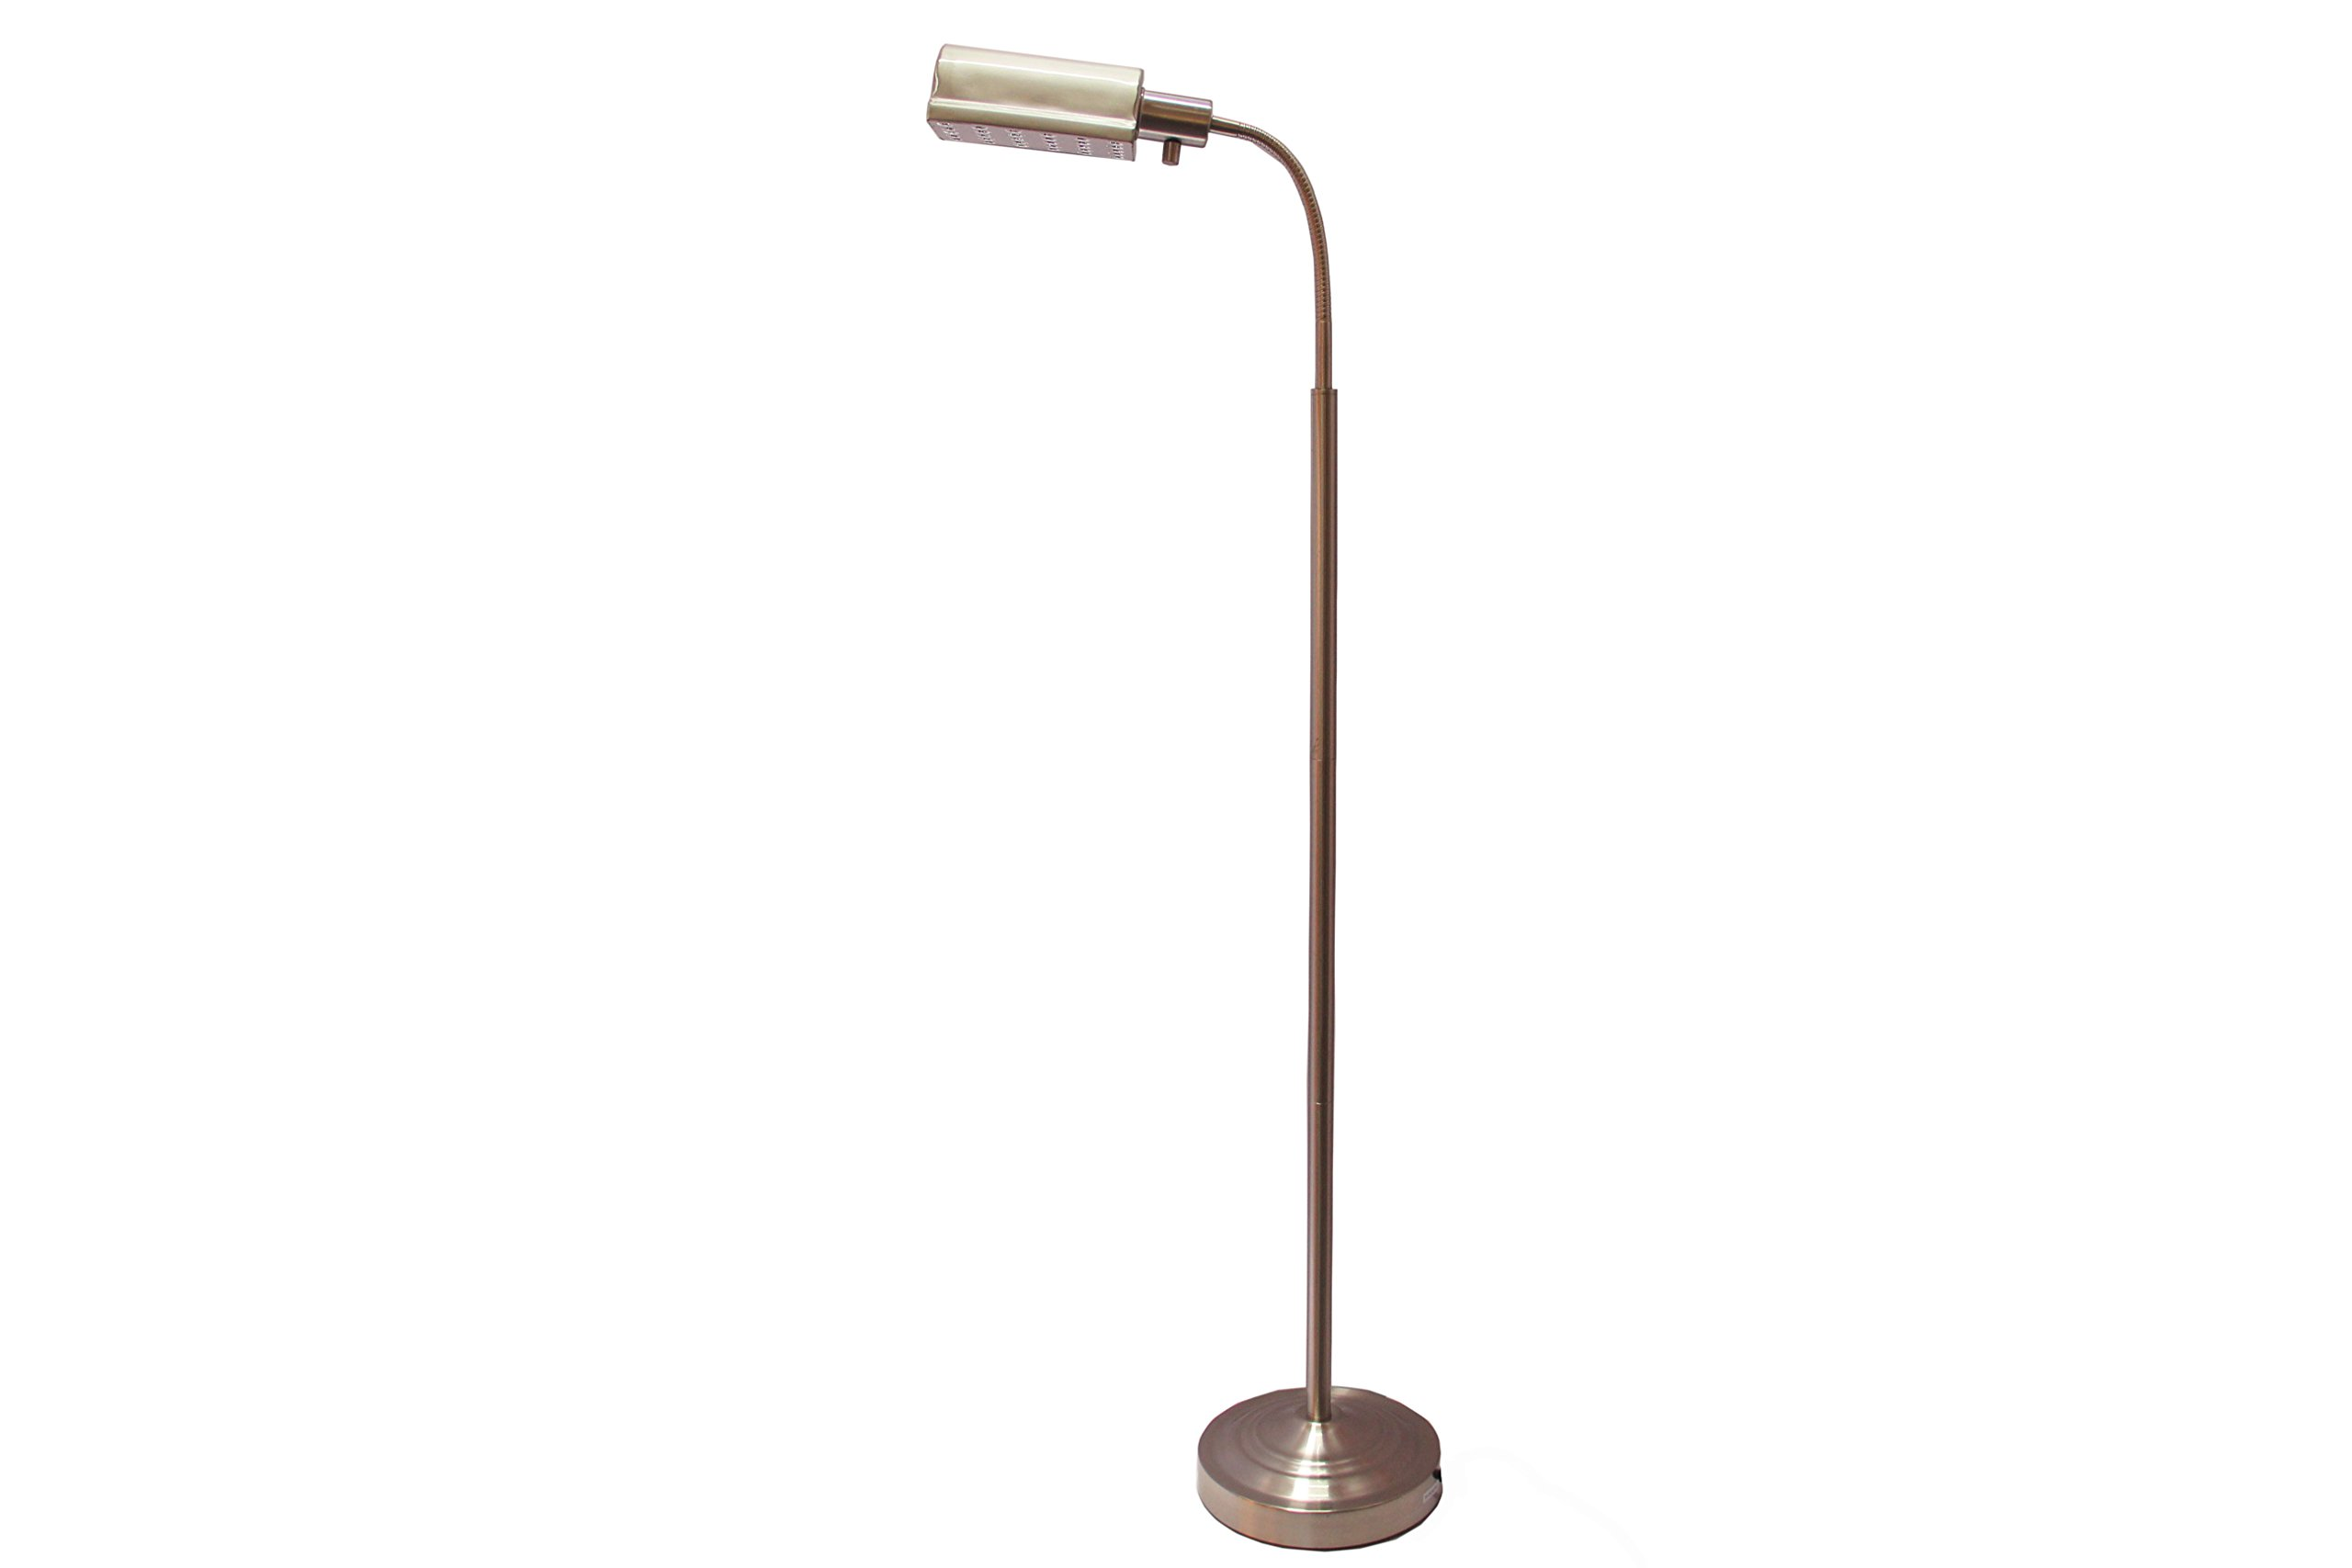 daylight24 402051-15 Natural Daylight Battery Operated Cordless Floor Lamp, Brushed Nickel